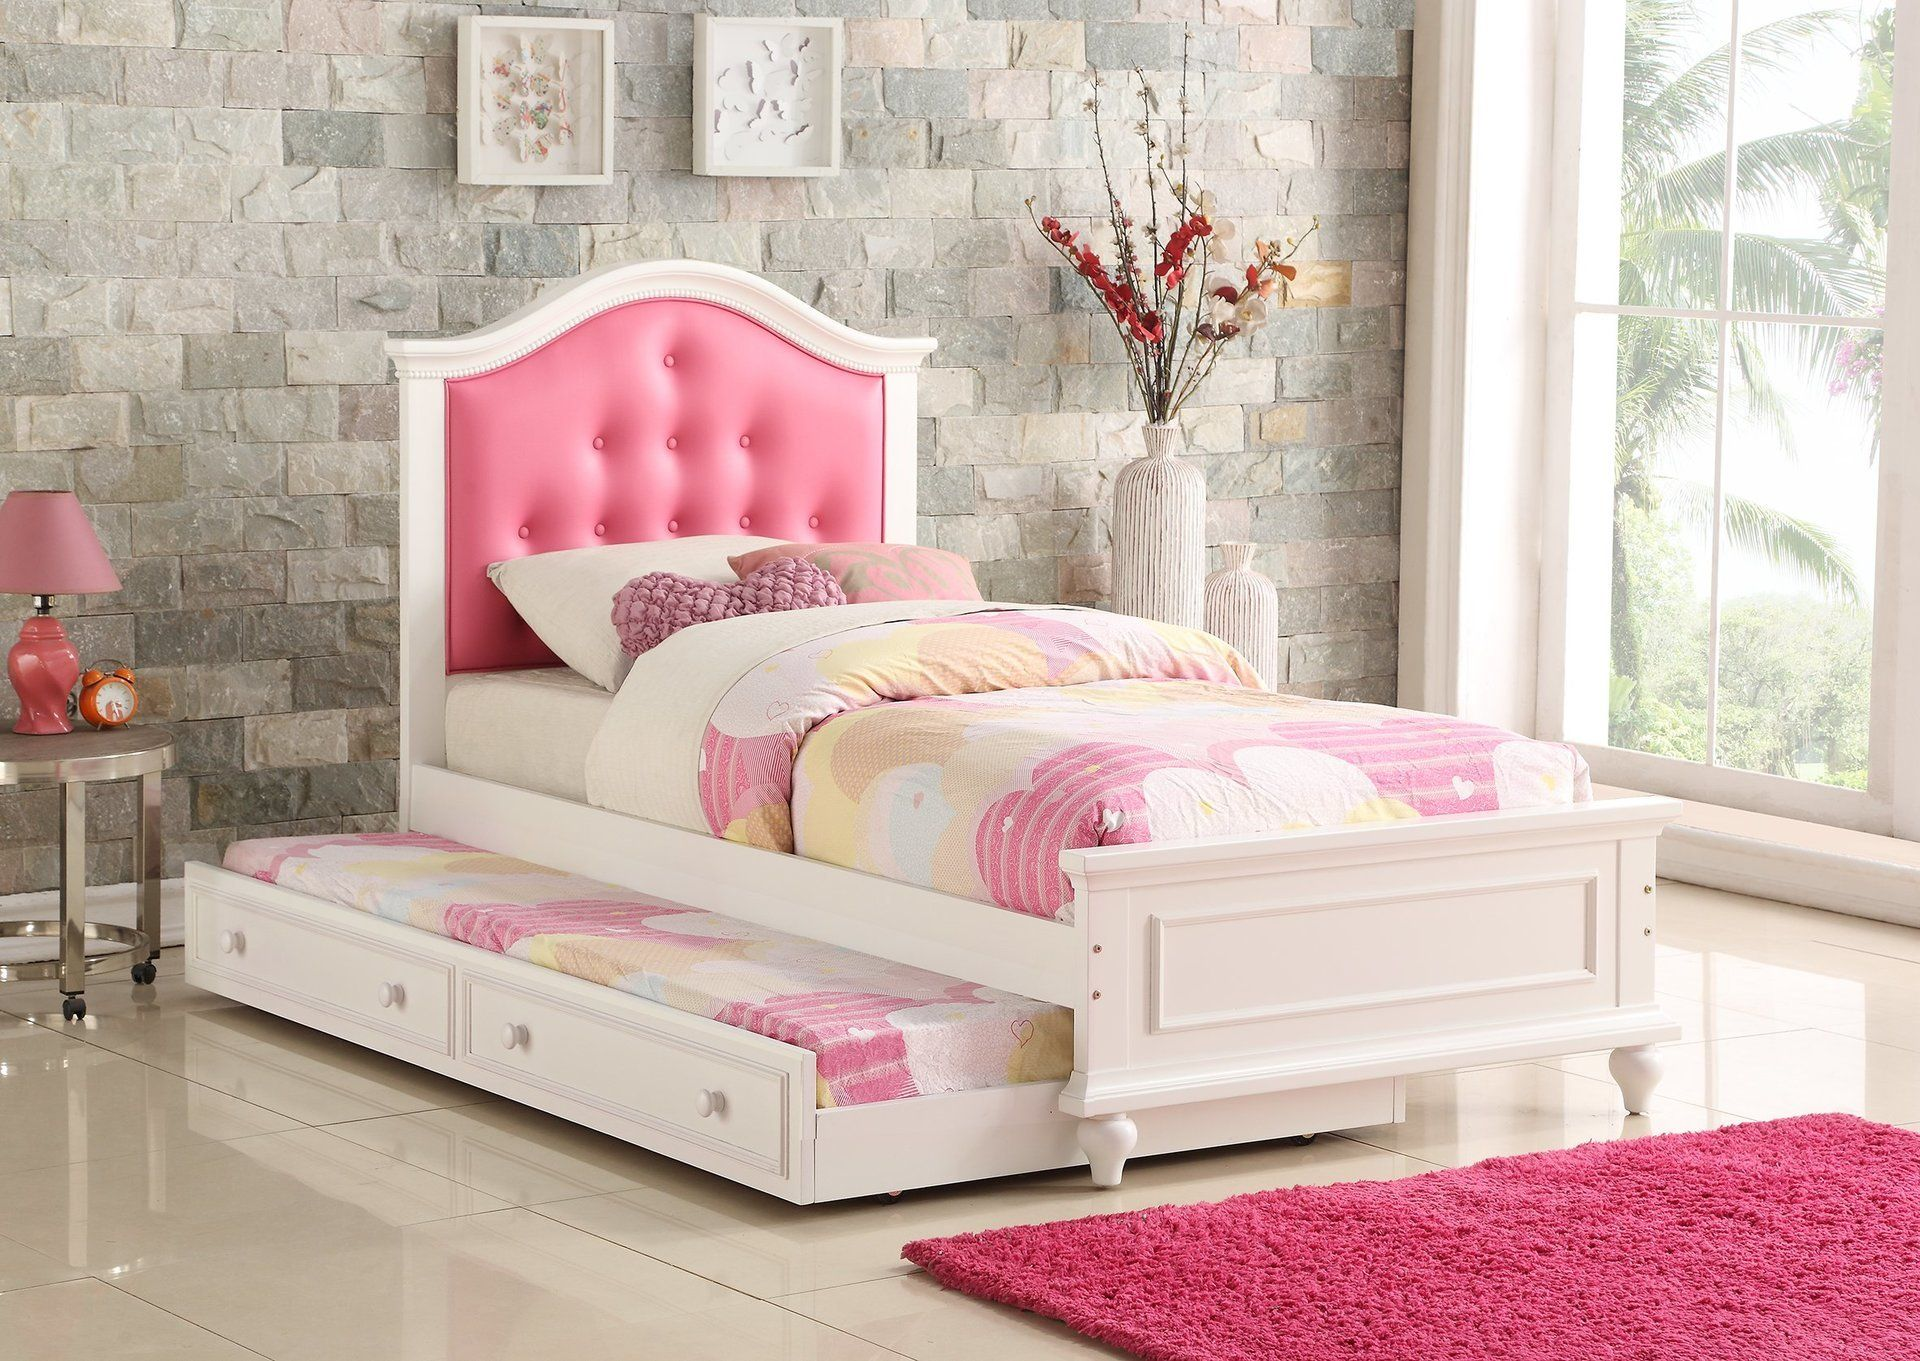 This Luxury Pink And White Trundle Bed Is Made For A Princess To